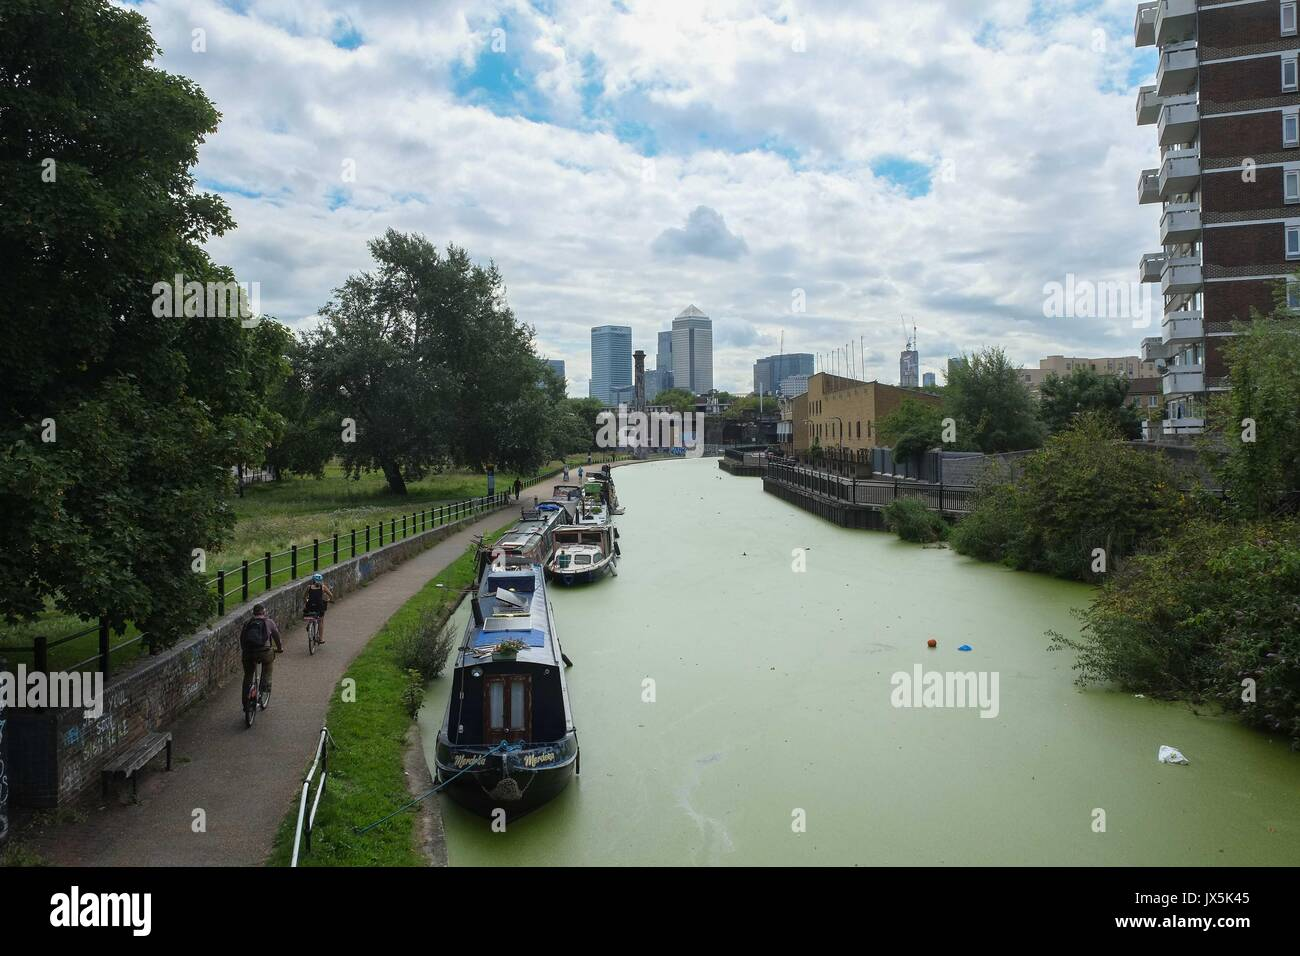 London, UK. 15th Aug, 2017. Limehouse Cut - London's oldest canal is covered in growing green algae after recent warms conditions in London. If the algae is toxic it uses up oxygen in the water at night which can suffocate fish and other creatures.Advise from the UK Enviroment Agency is to assume it is toxic and keep pets and children away from the water and avoid skin contact with the water or algae. :Credit: Claire Doherty Alamy/Live News - Stock Image